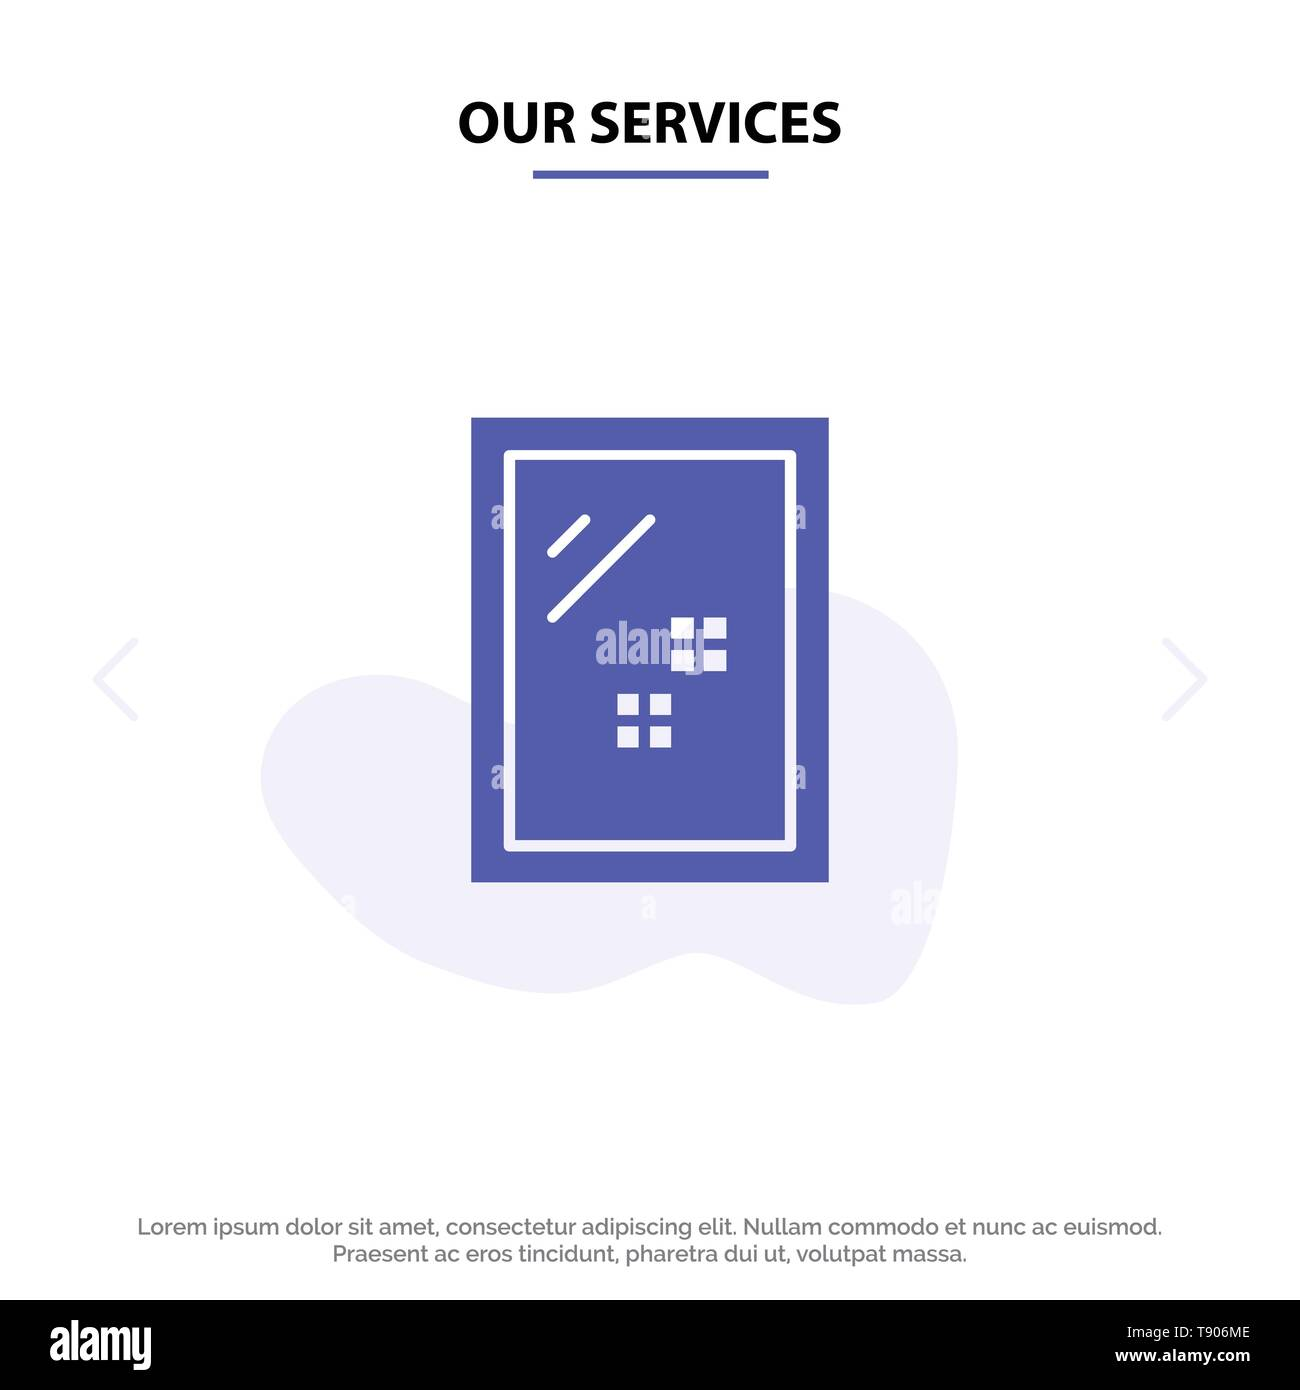 Our Services Door, Mirror, Cleaning, Wash Solid Glyph Icon Web card Template Stock Vector